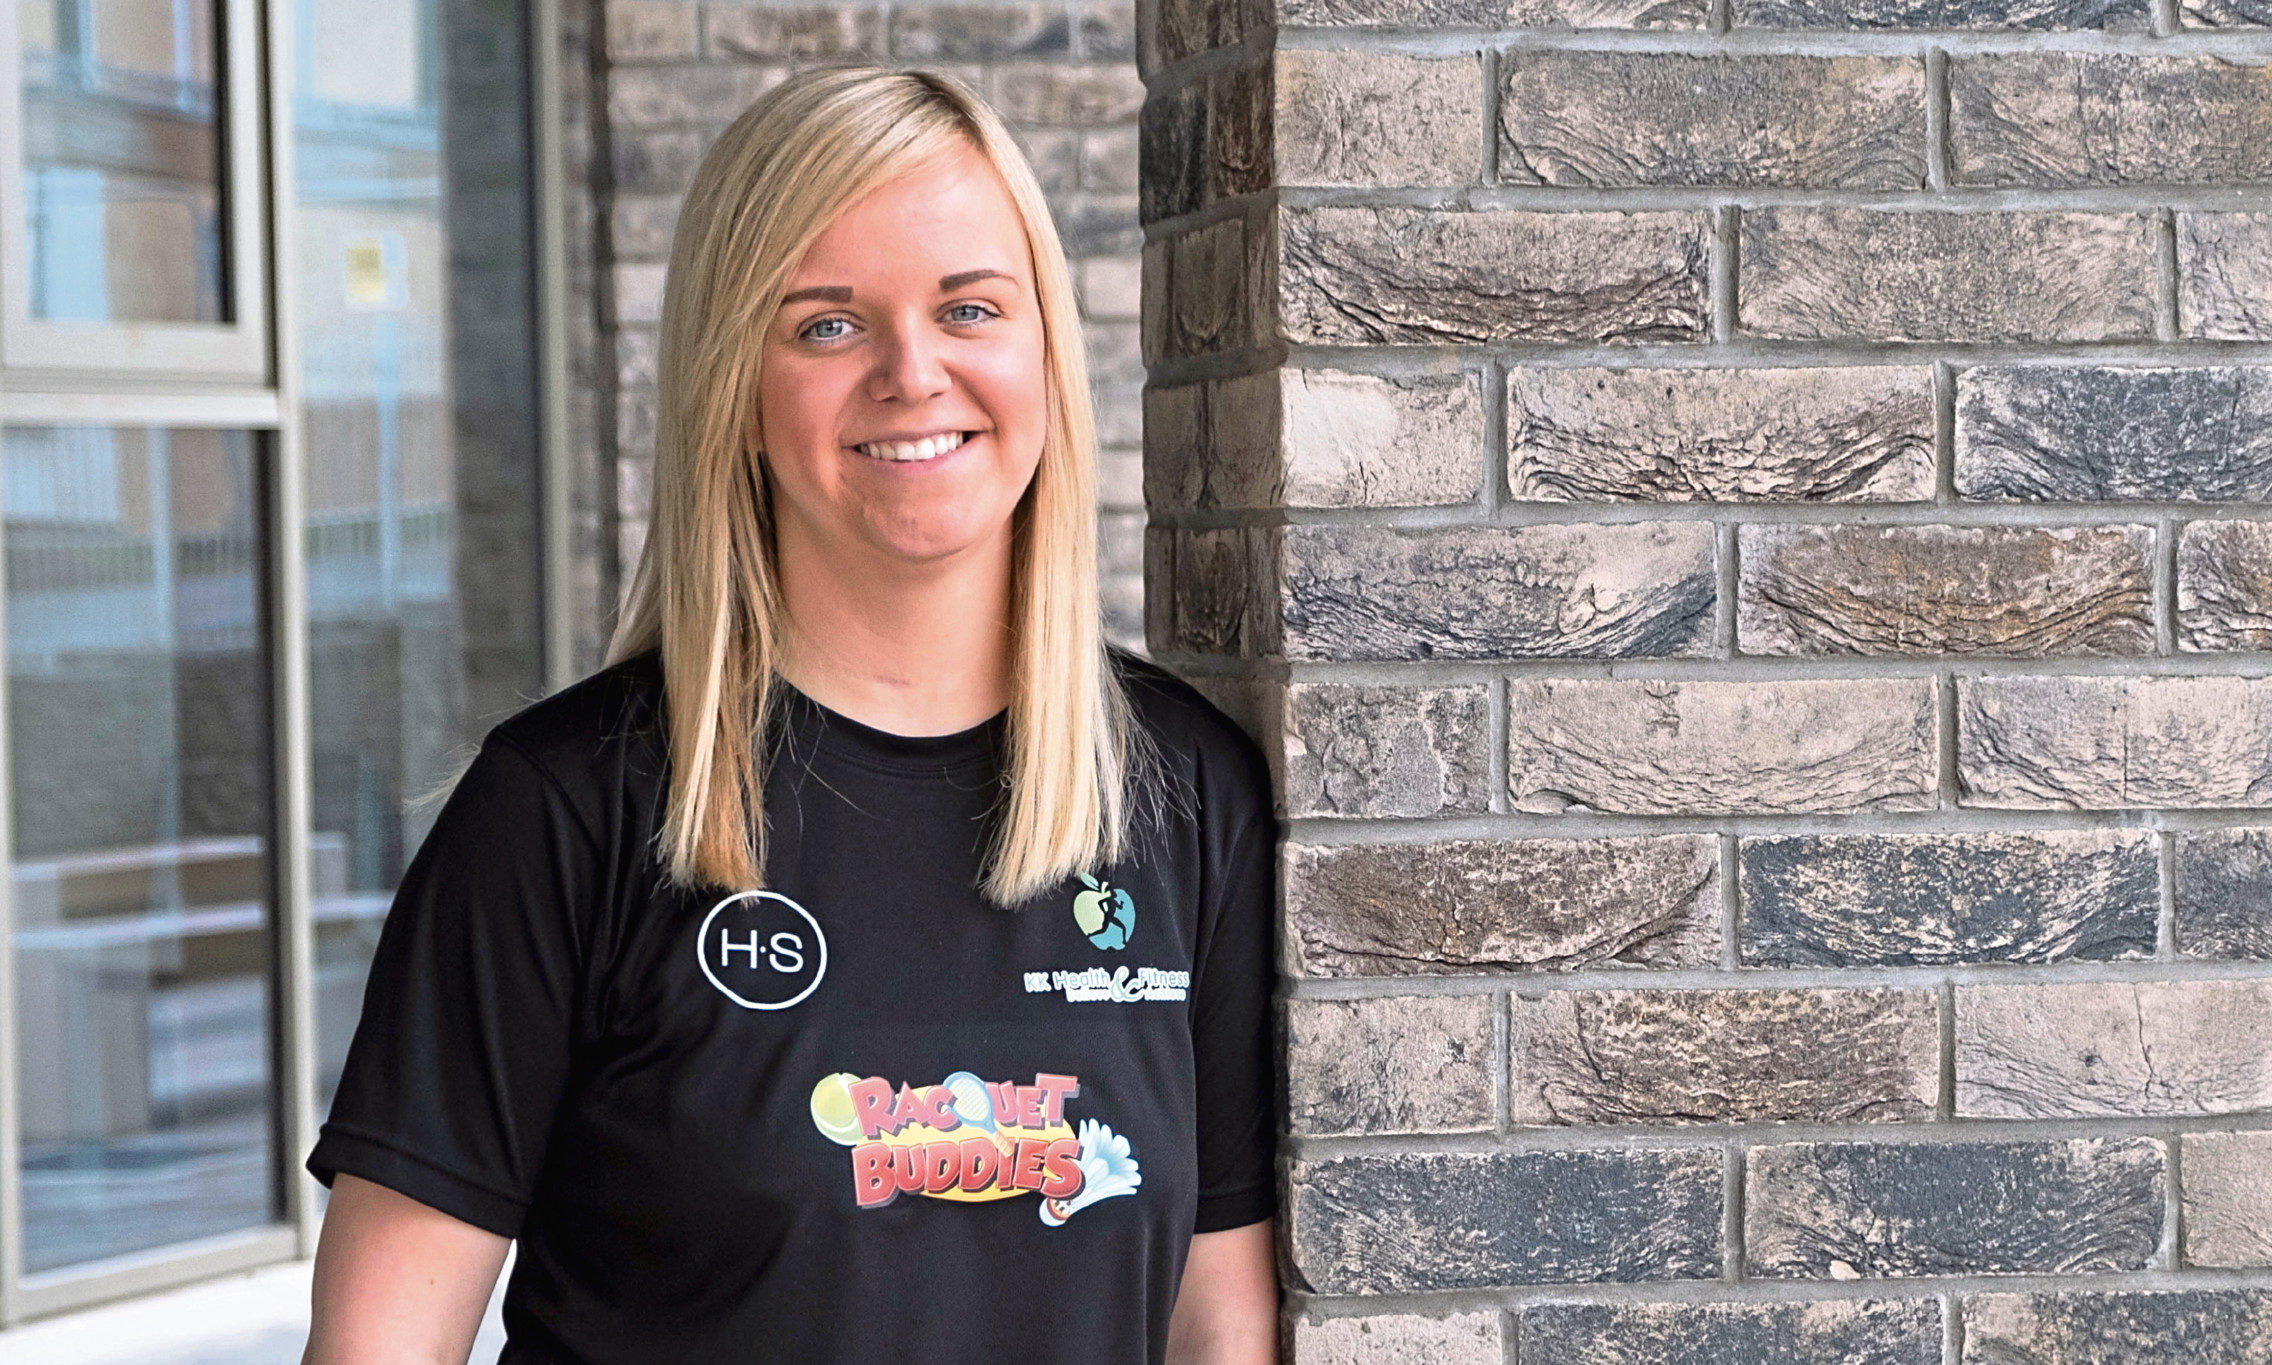 Hayley Donnelly plans to expand her racquet based sports business via franchise.